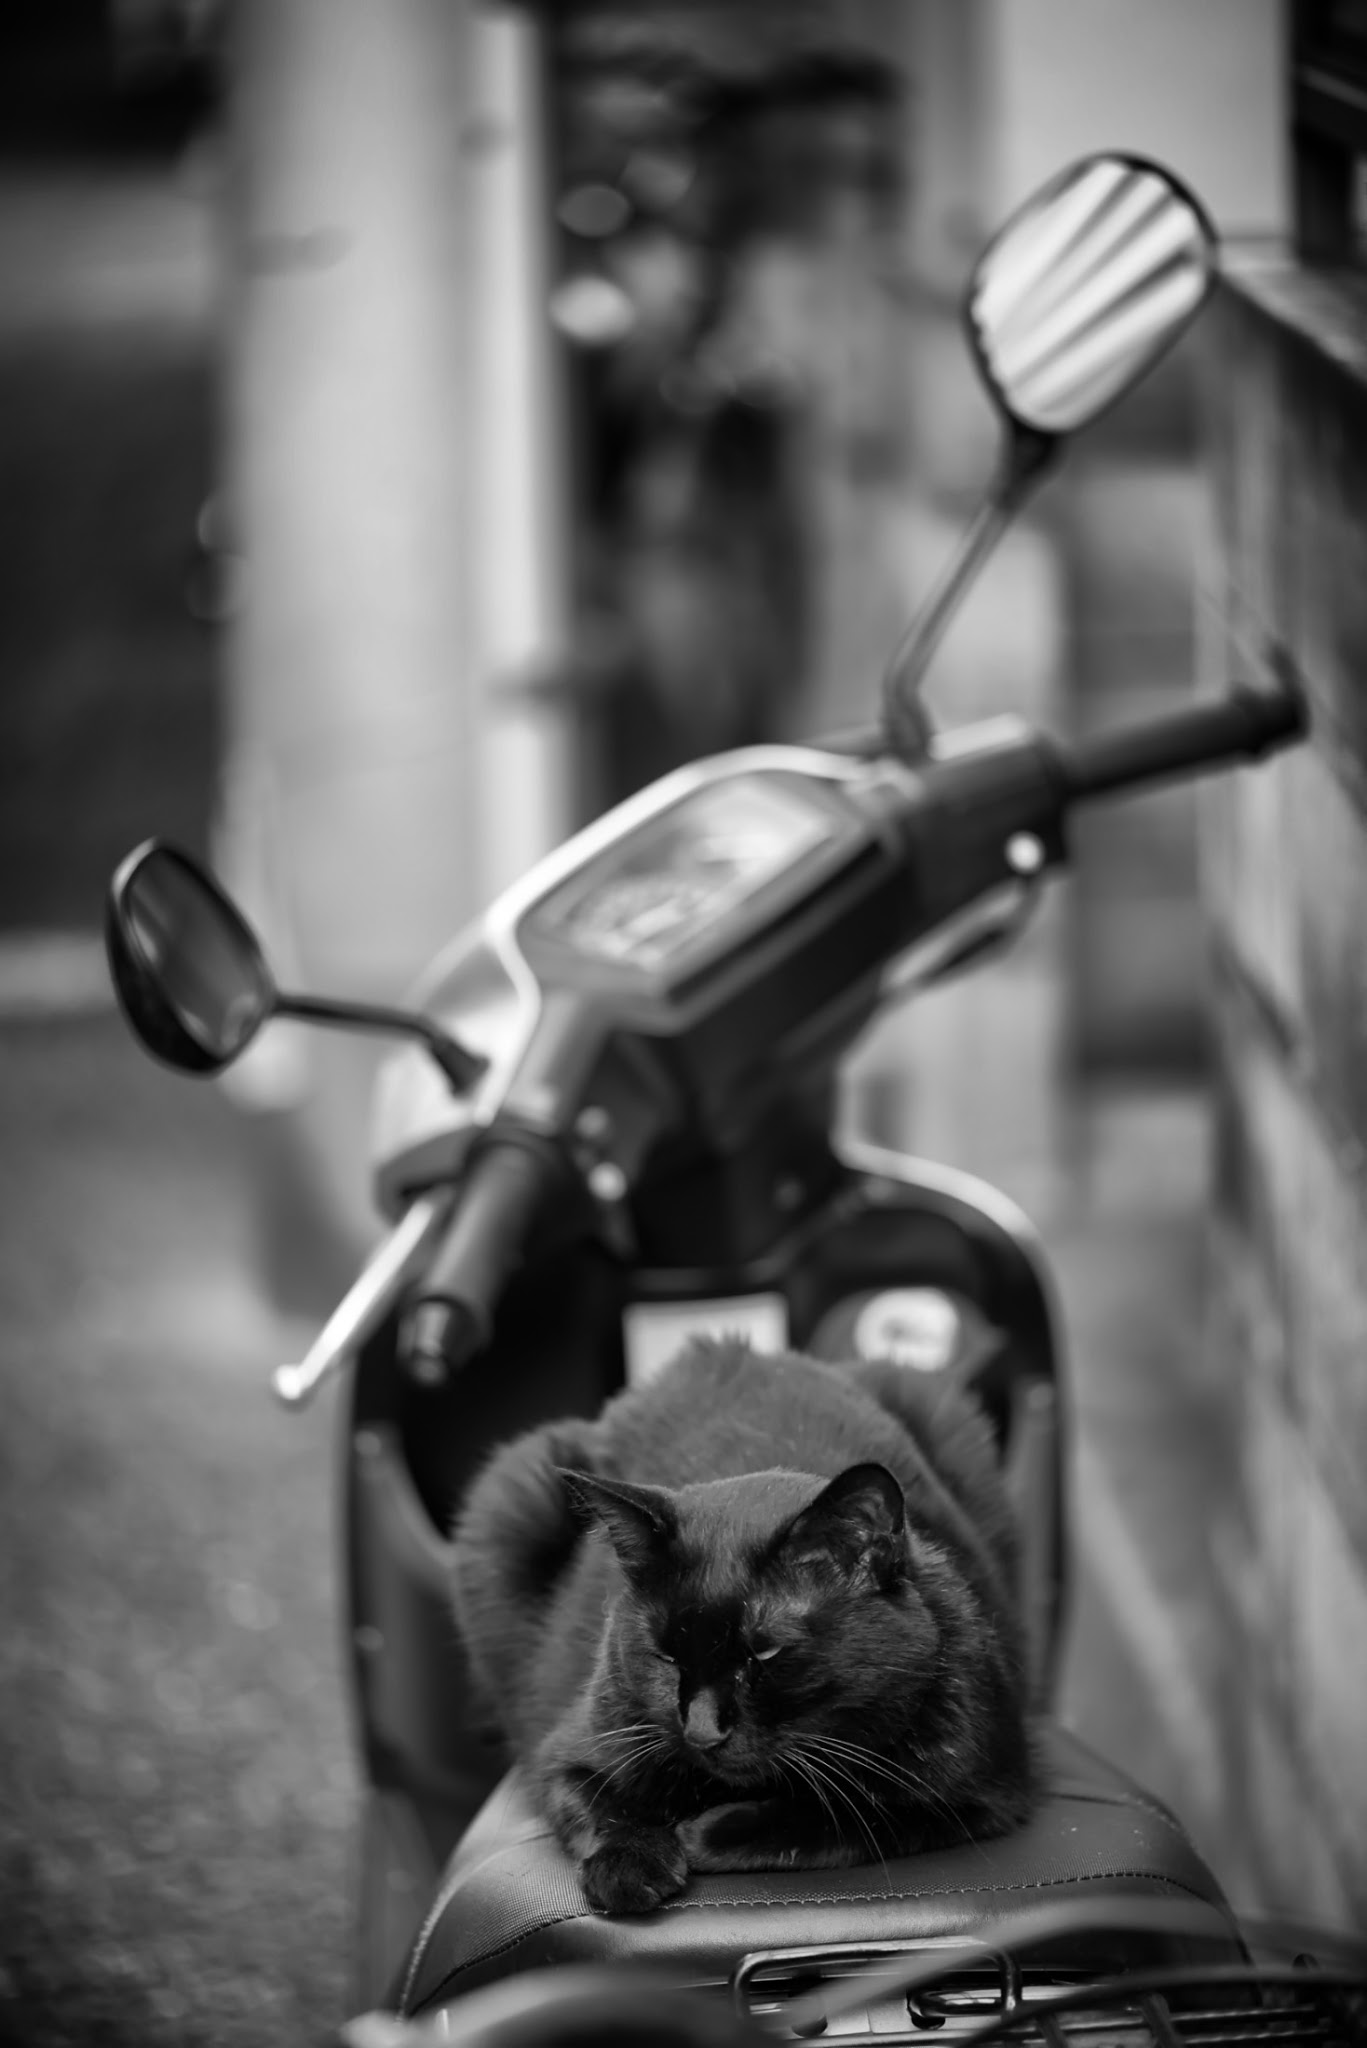 Photo: Biker cat  I know I posted this one to the #GPlus2YearAnniversary  group album before, but I wanted this in my own album as well since I rather liked it.  Plus, I was taking care of 4 cats this weekend, so it seemed fitting.  This weekend went by too fast... Monday again, and time to head off to work.. (T_T)  Settings: D800E / ISO 200 / 105mm / f3 / 1/200s  #blackandwhite   #cat   #Tokyo   #Japan